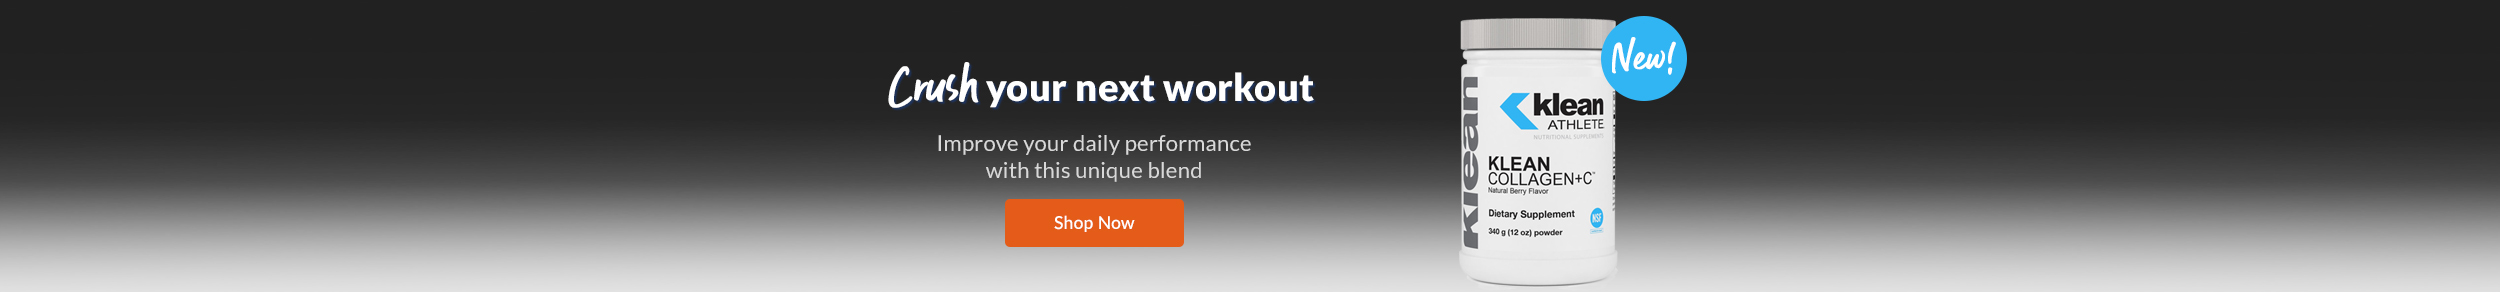 Crush your next workout - Improve your daily performance with this unique blend!